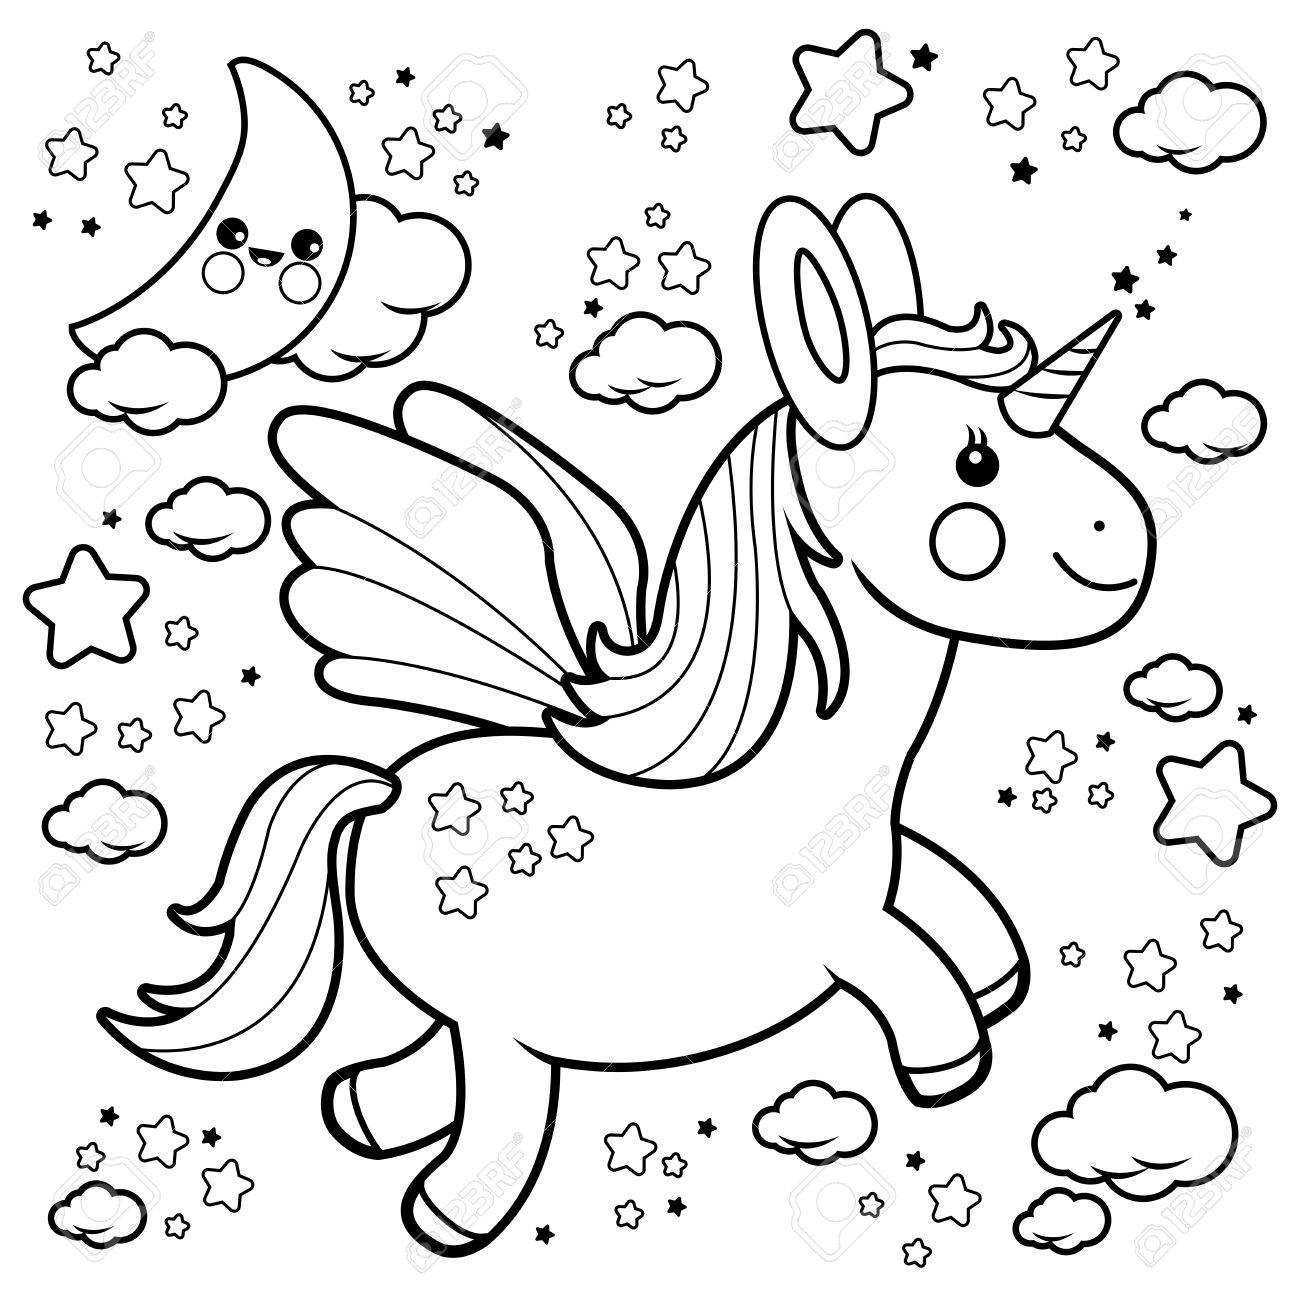 cute unicorn flying in the night sky black and white coloring